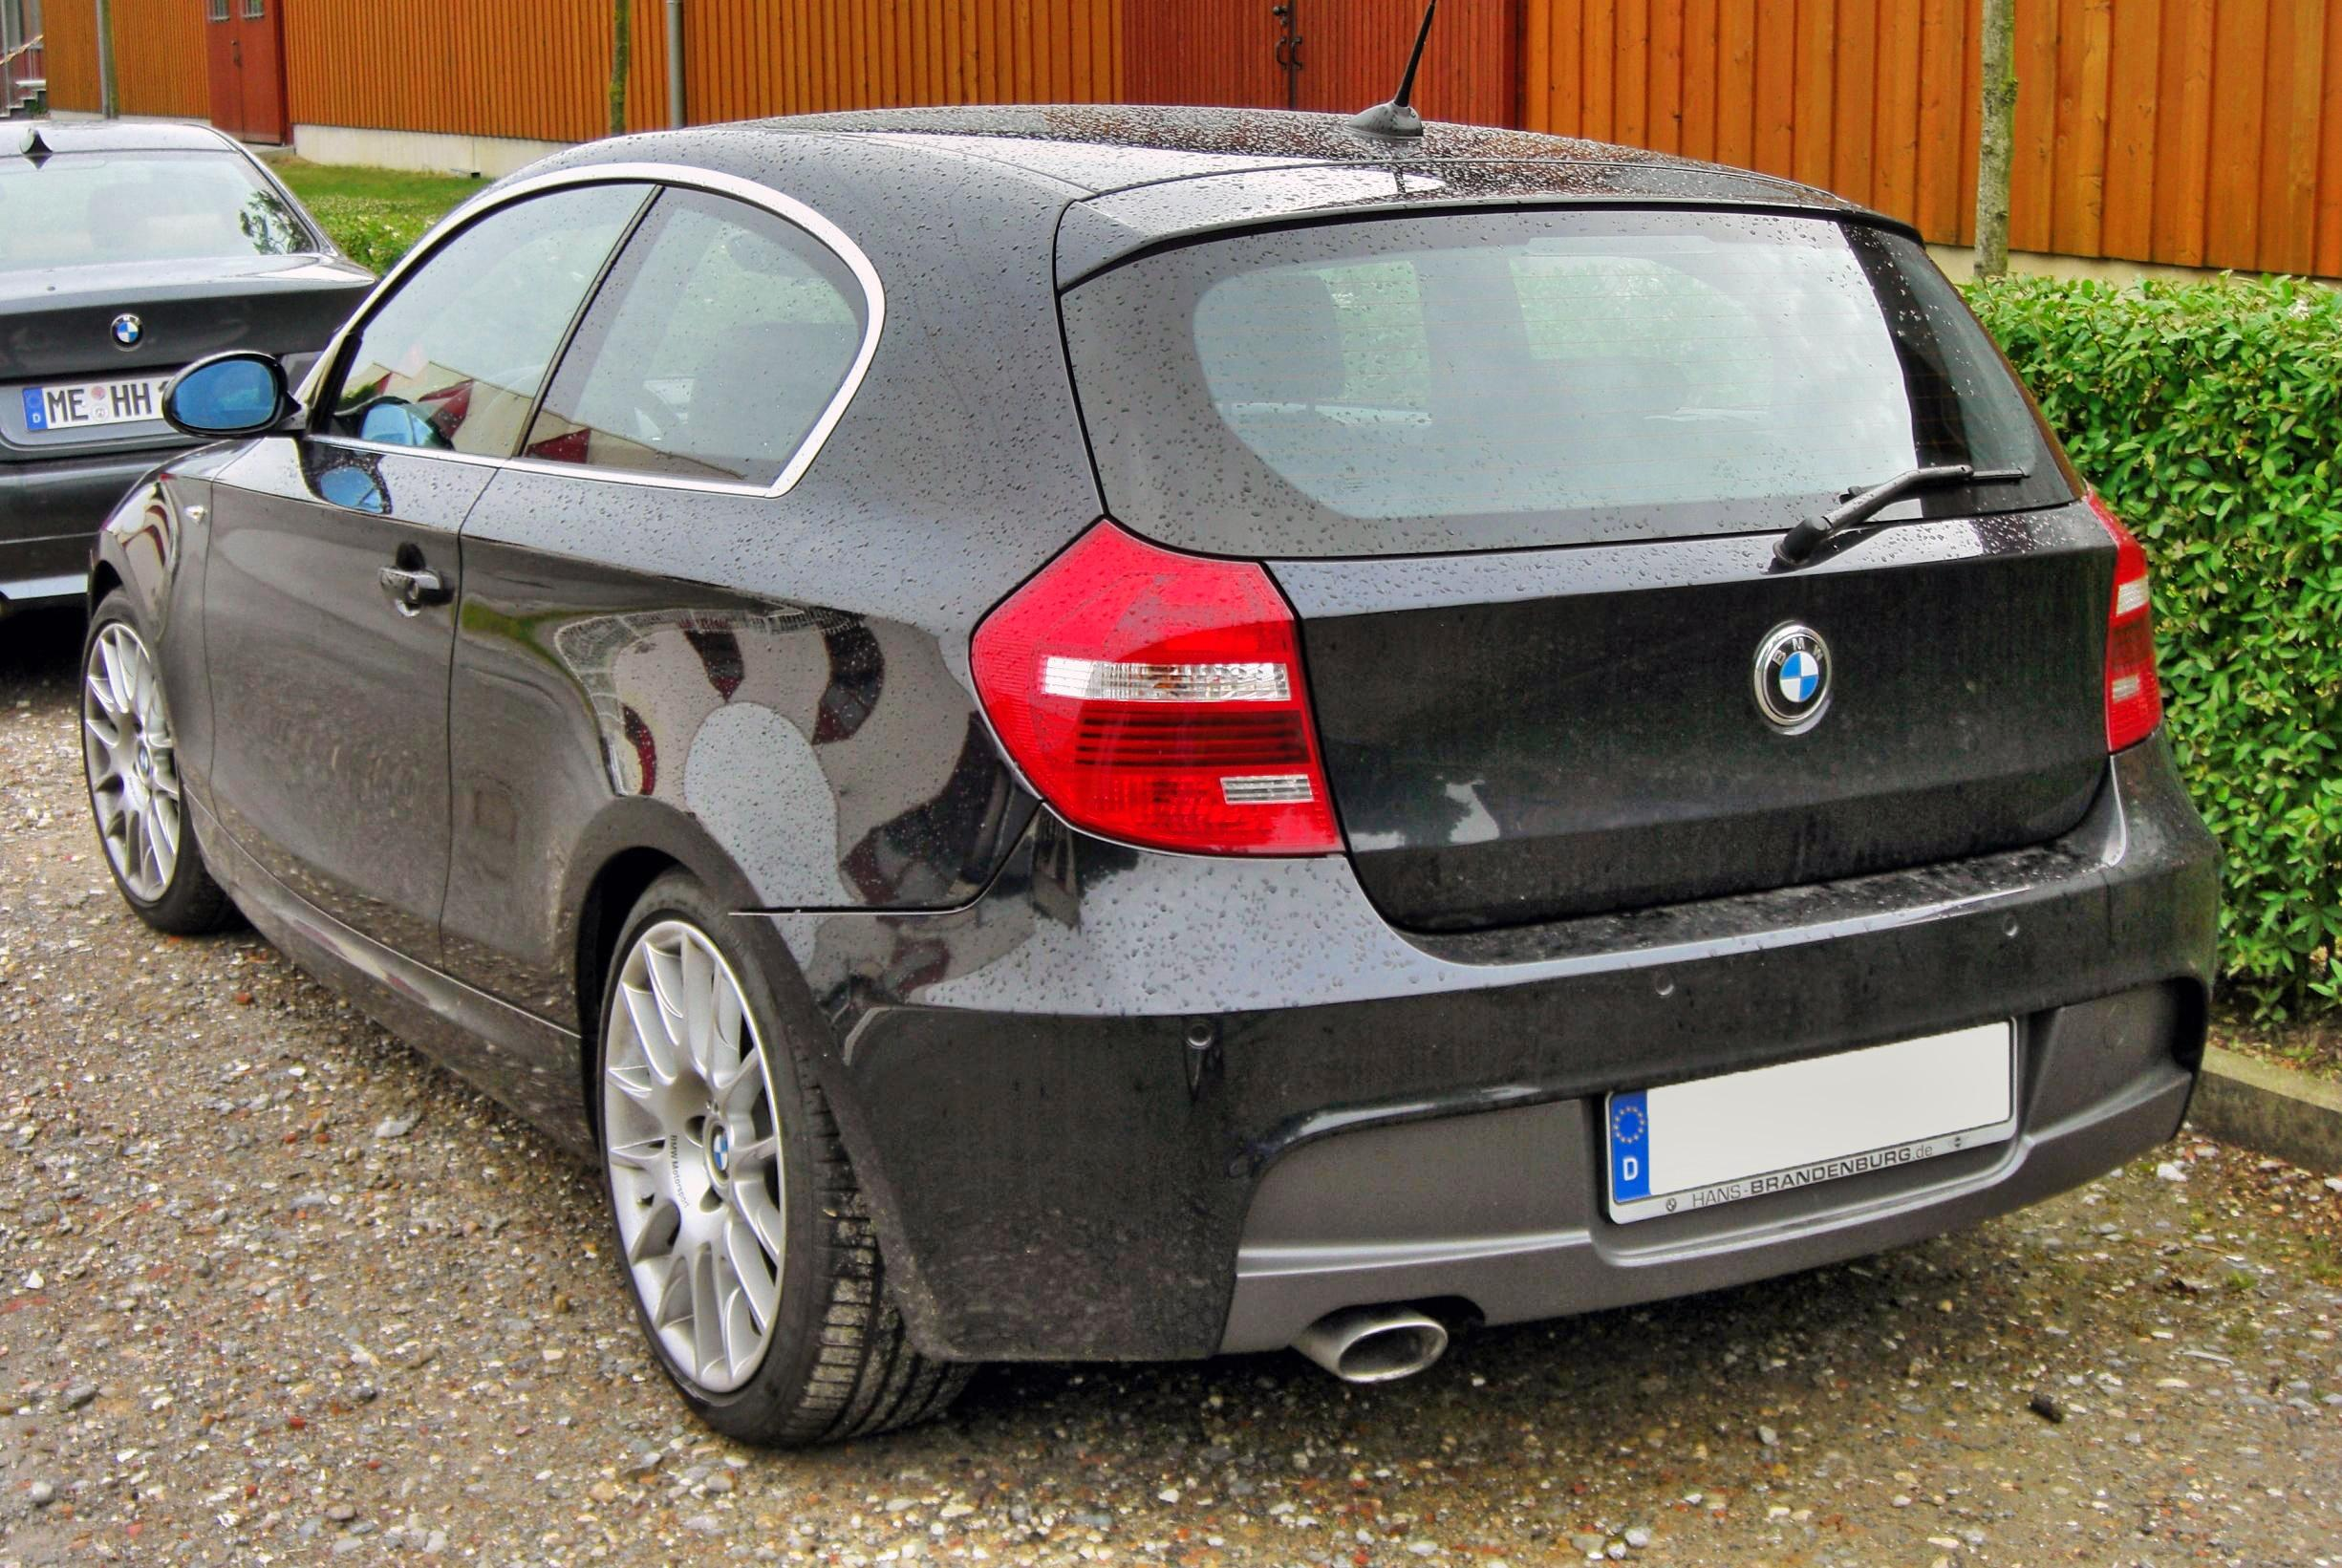 file bmw 120d m sportpaket facelift 20090615 rear jpg wikimedia commons. Black Bedroom Furniture Sets. Home Design Ideas